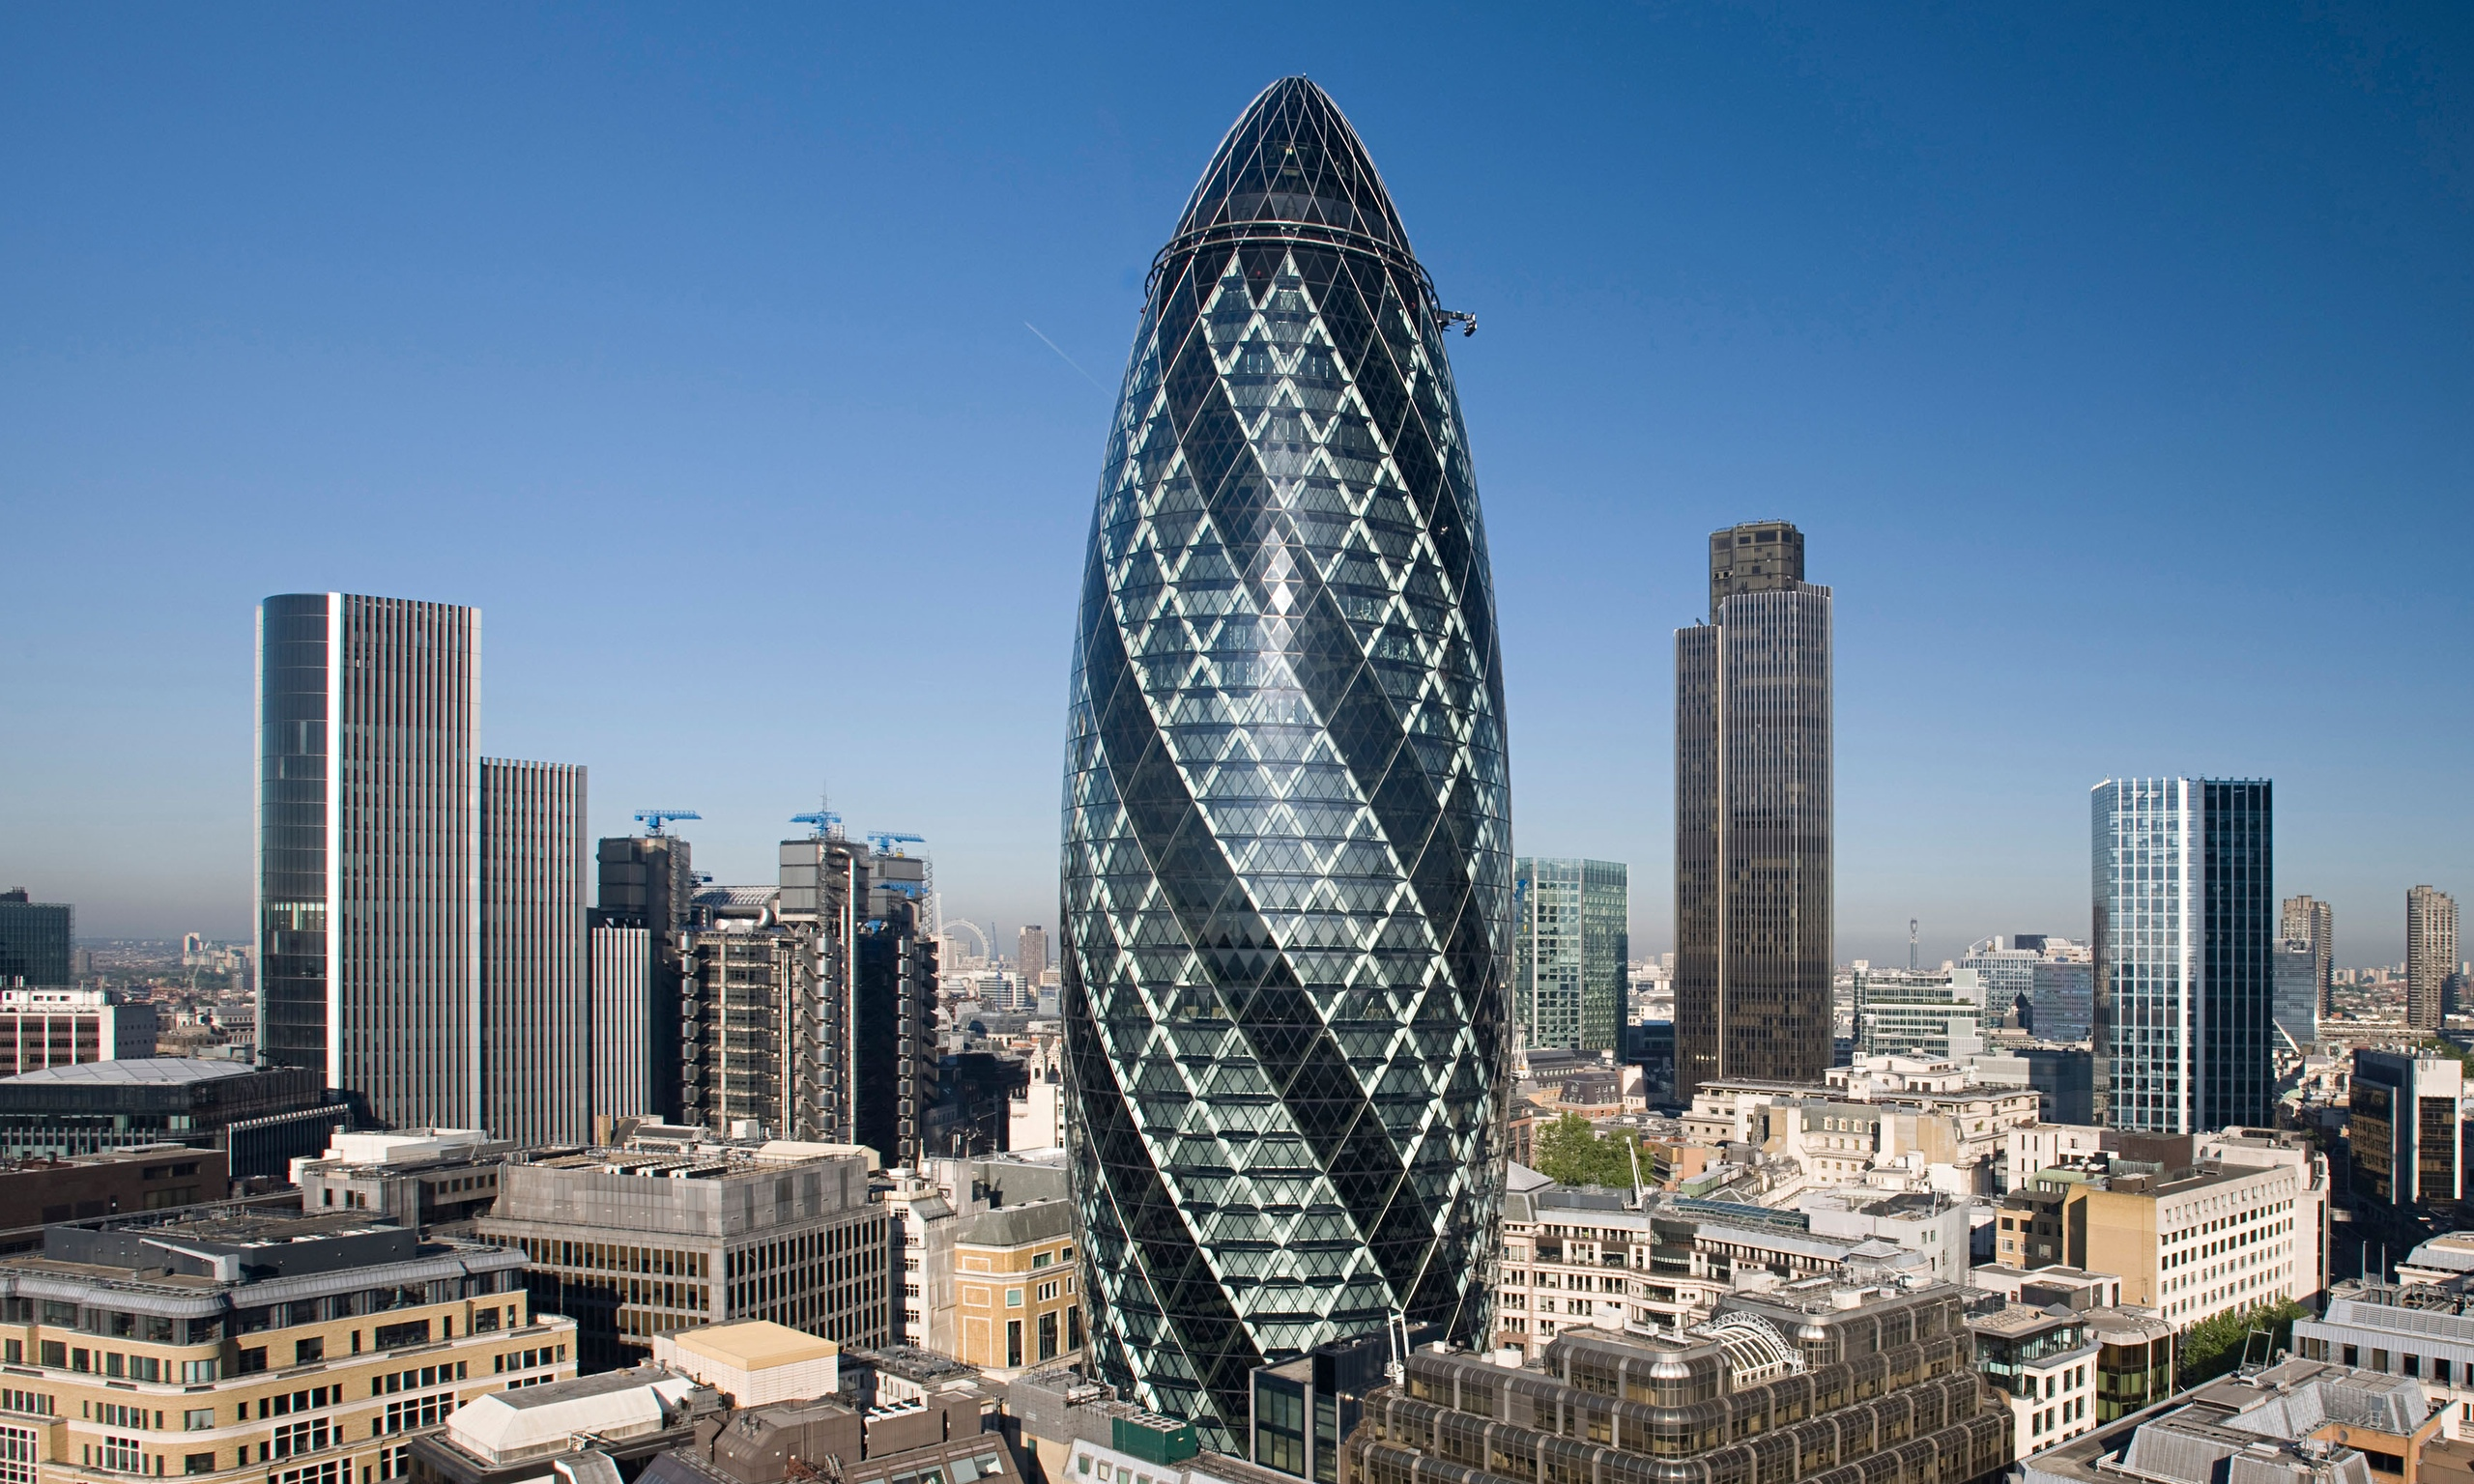 The Gherkin safra Group